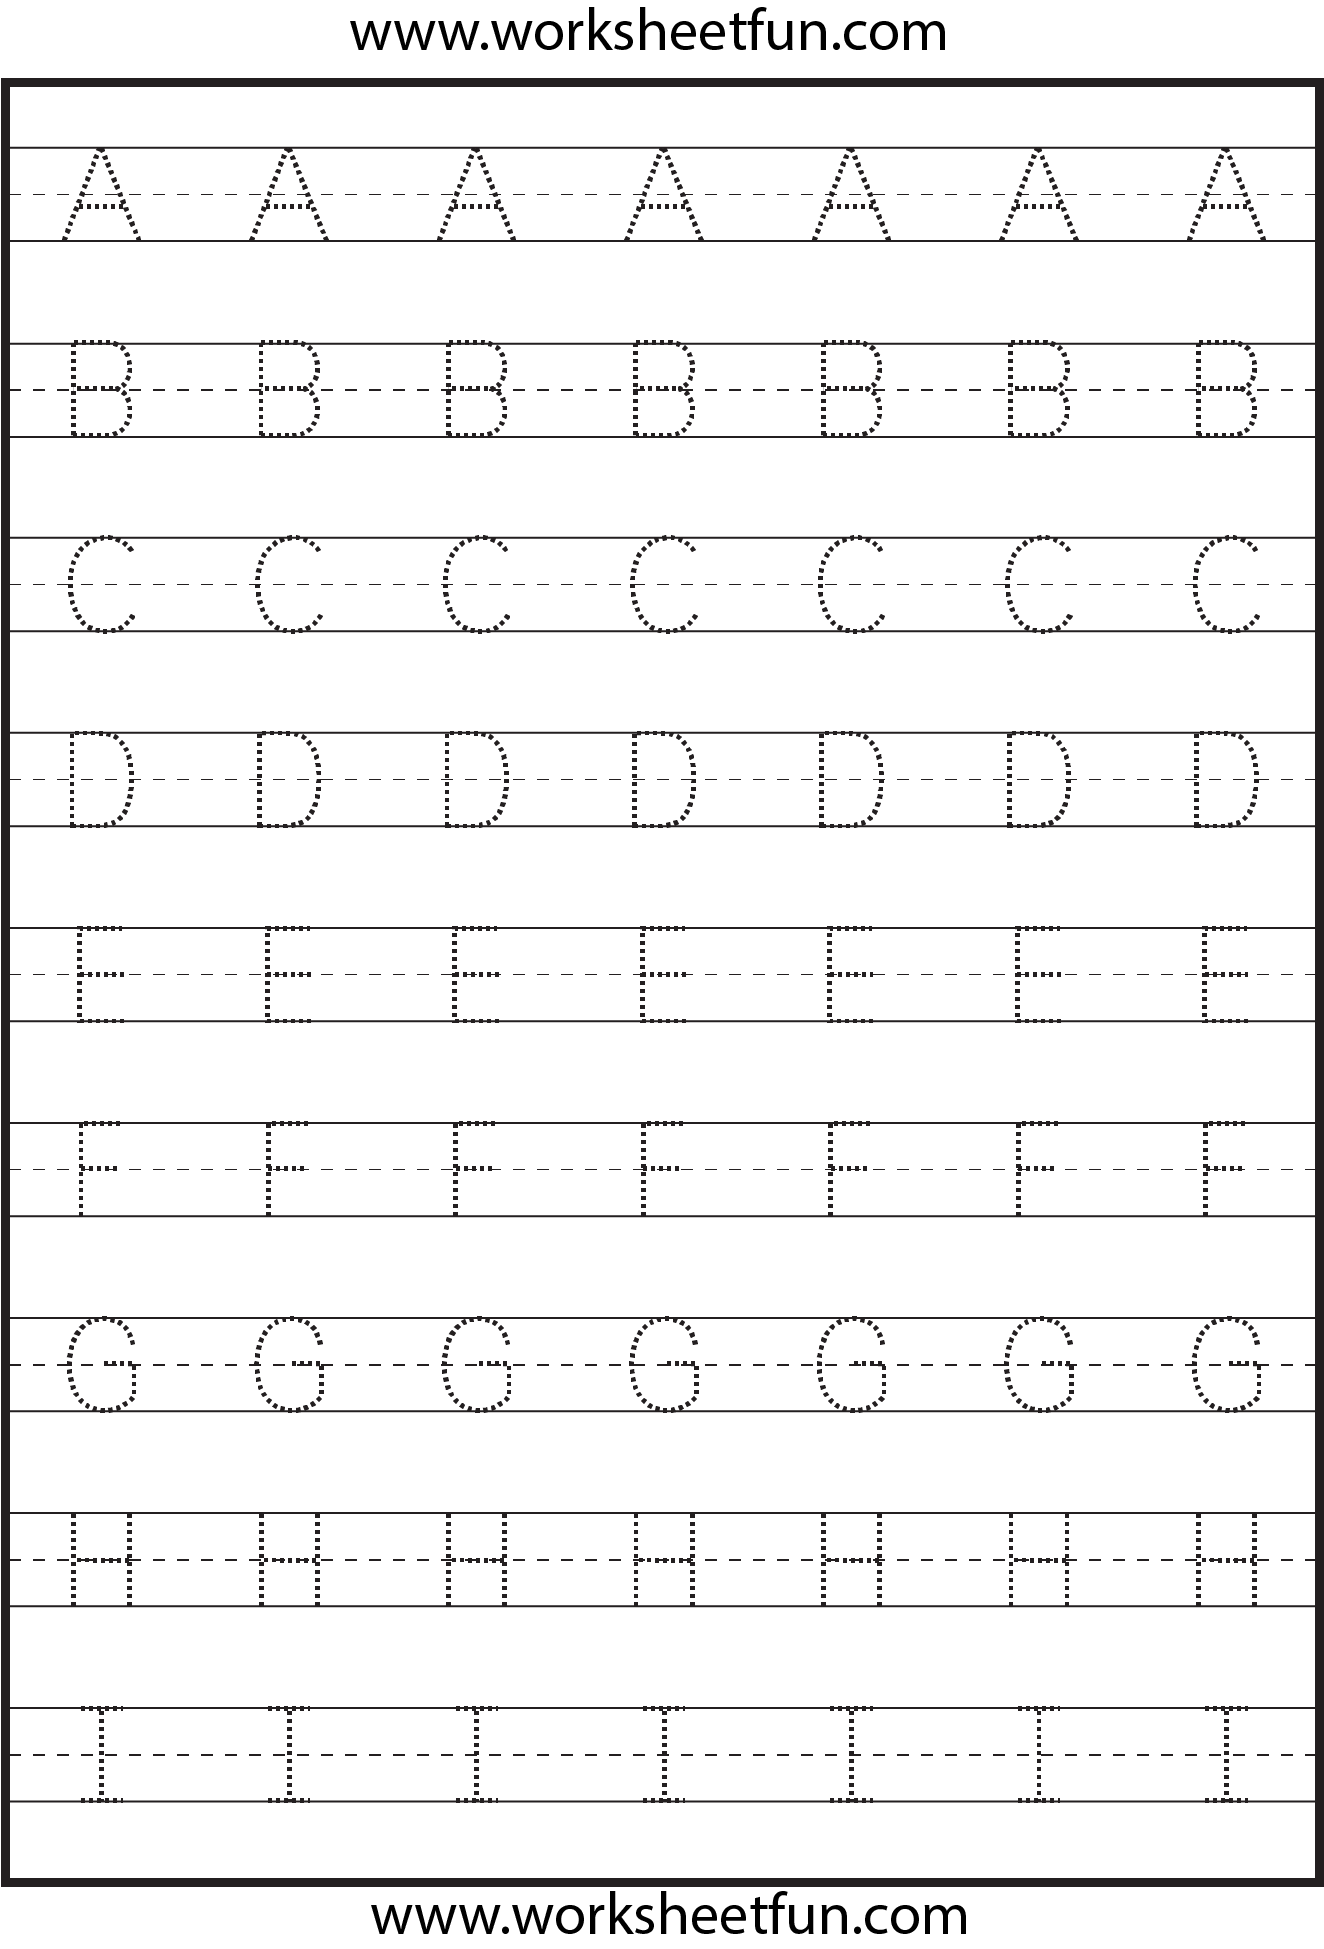 Tracing Uppercase Letters Capital Letters 3 Worksheets – Capital Letter Worksheets for Kindergarten